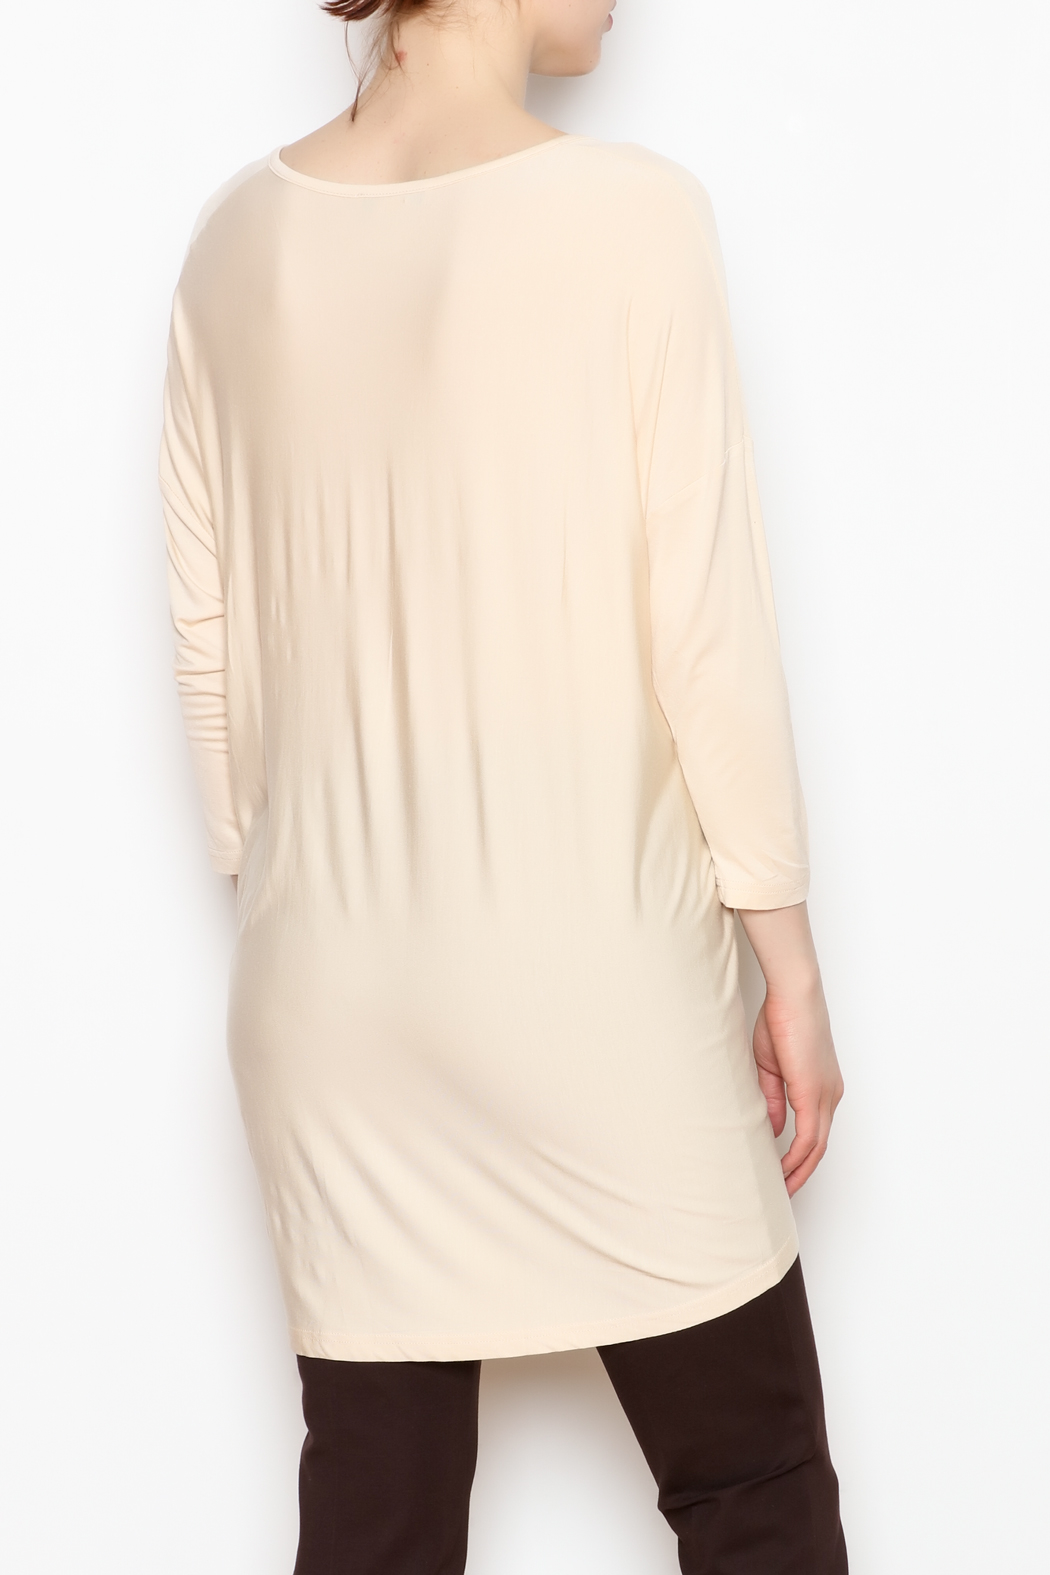 JoyJoy V-Neck Tunic - Back Cropped Image